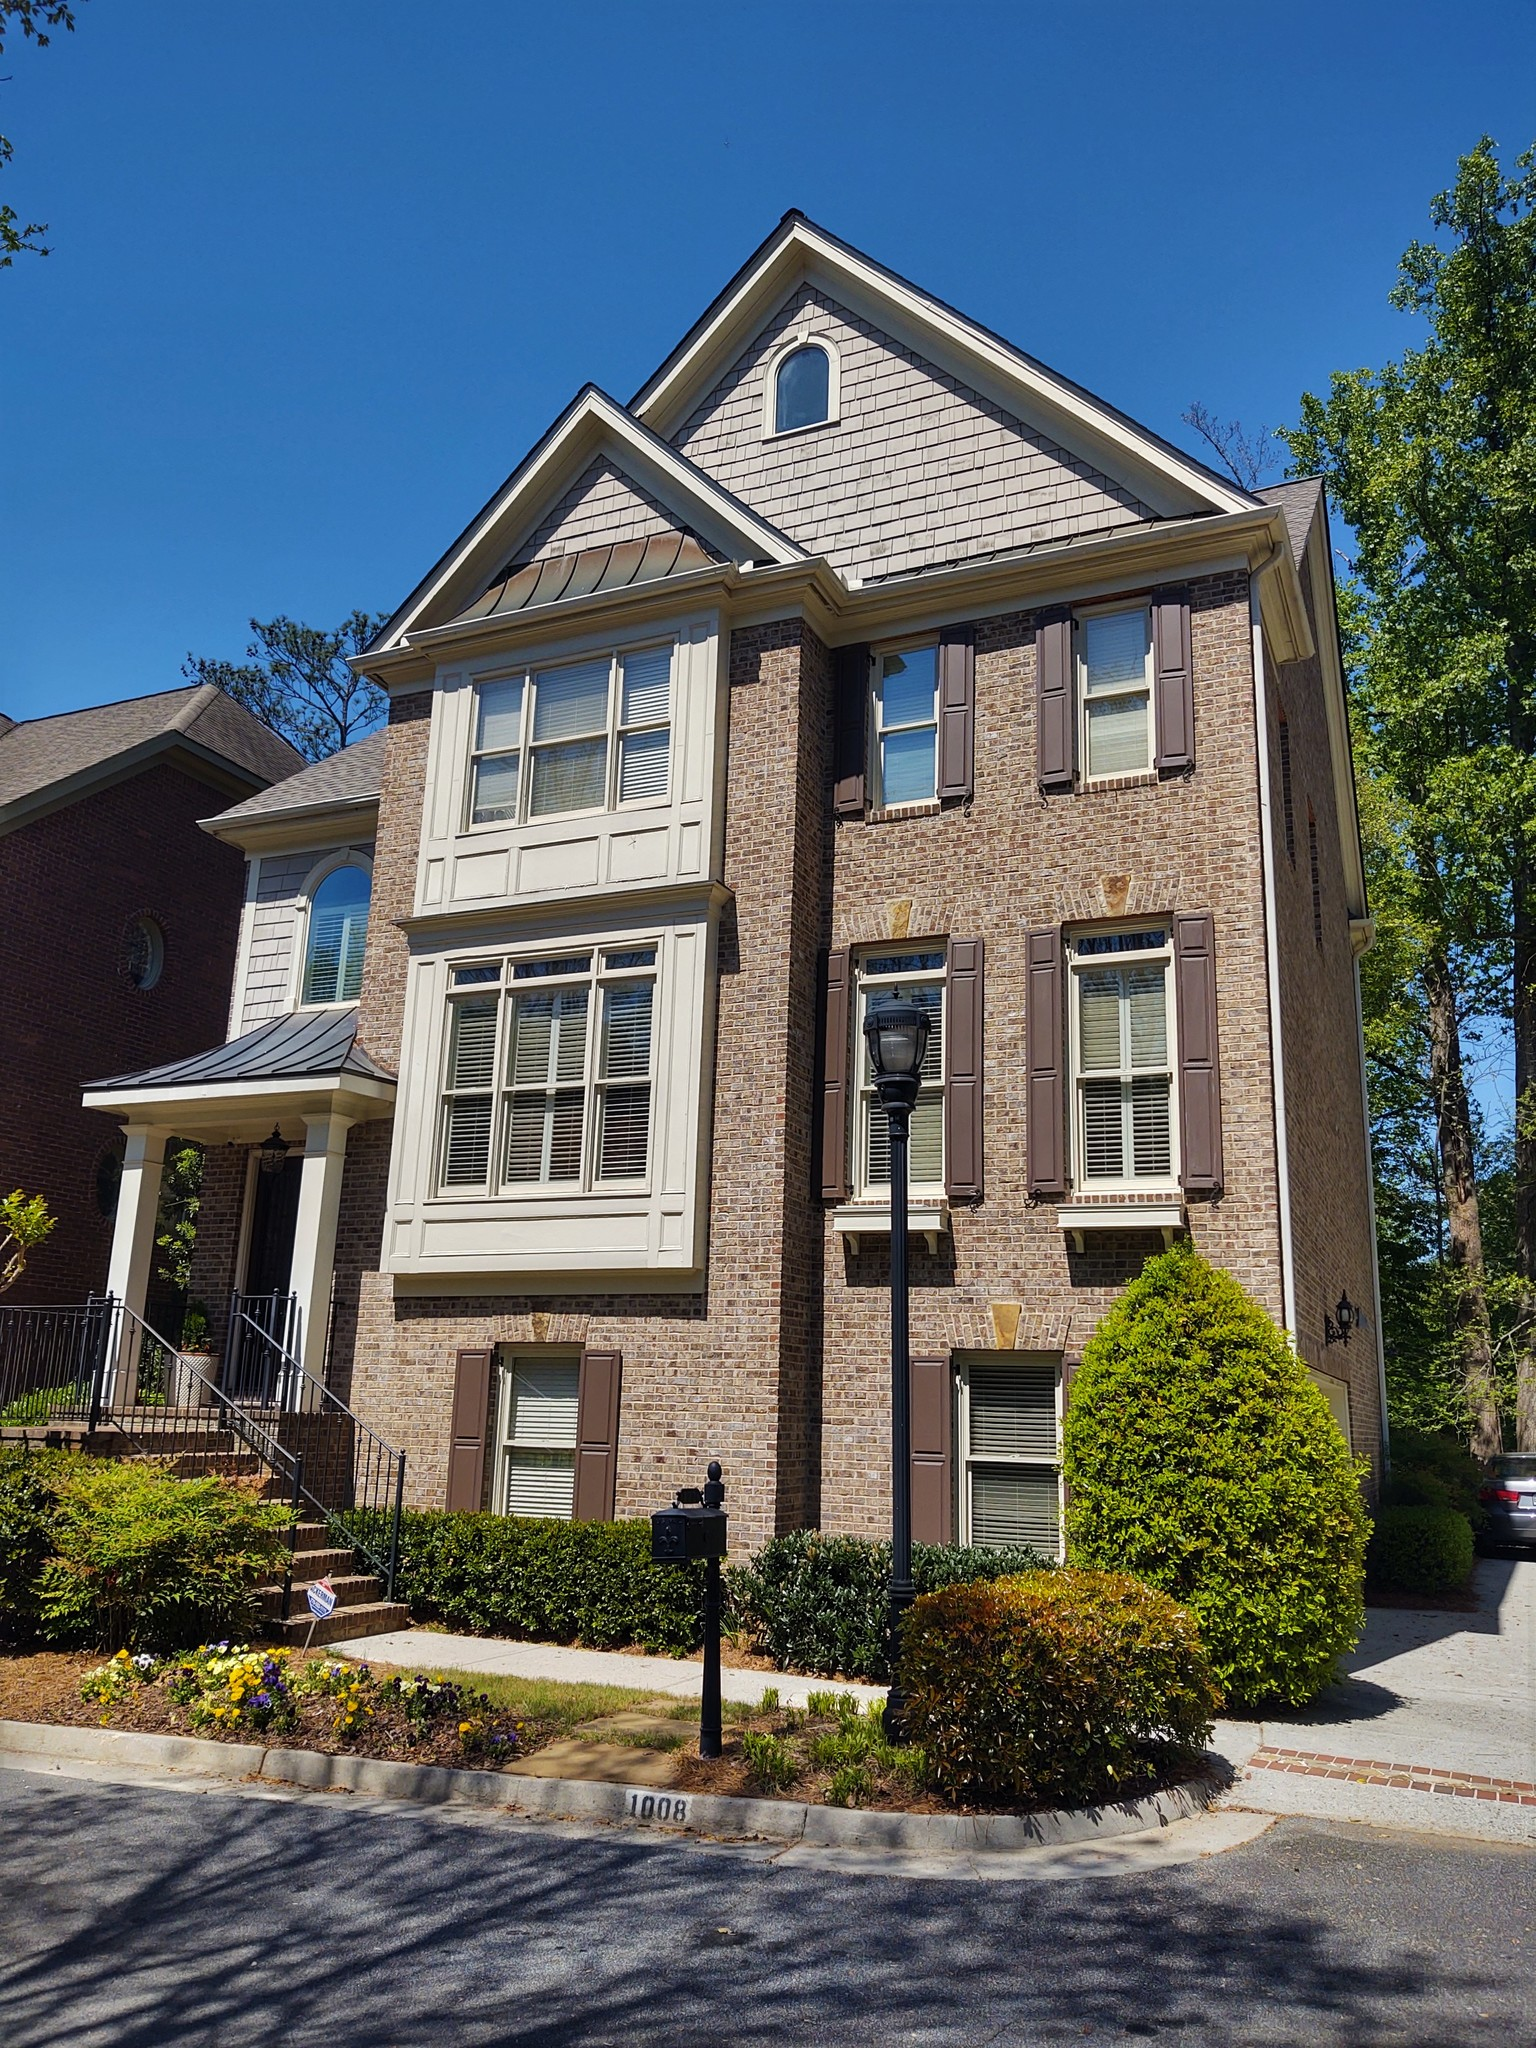 4-Bedroom House In Madeline Manor Townhomes